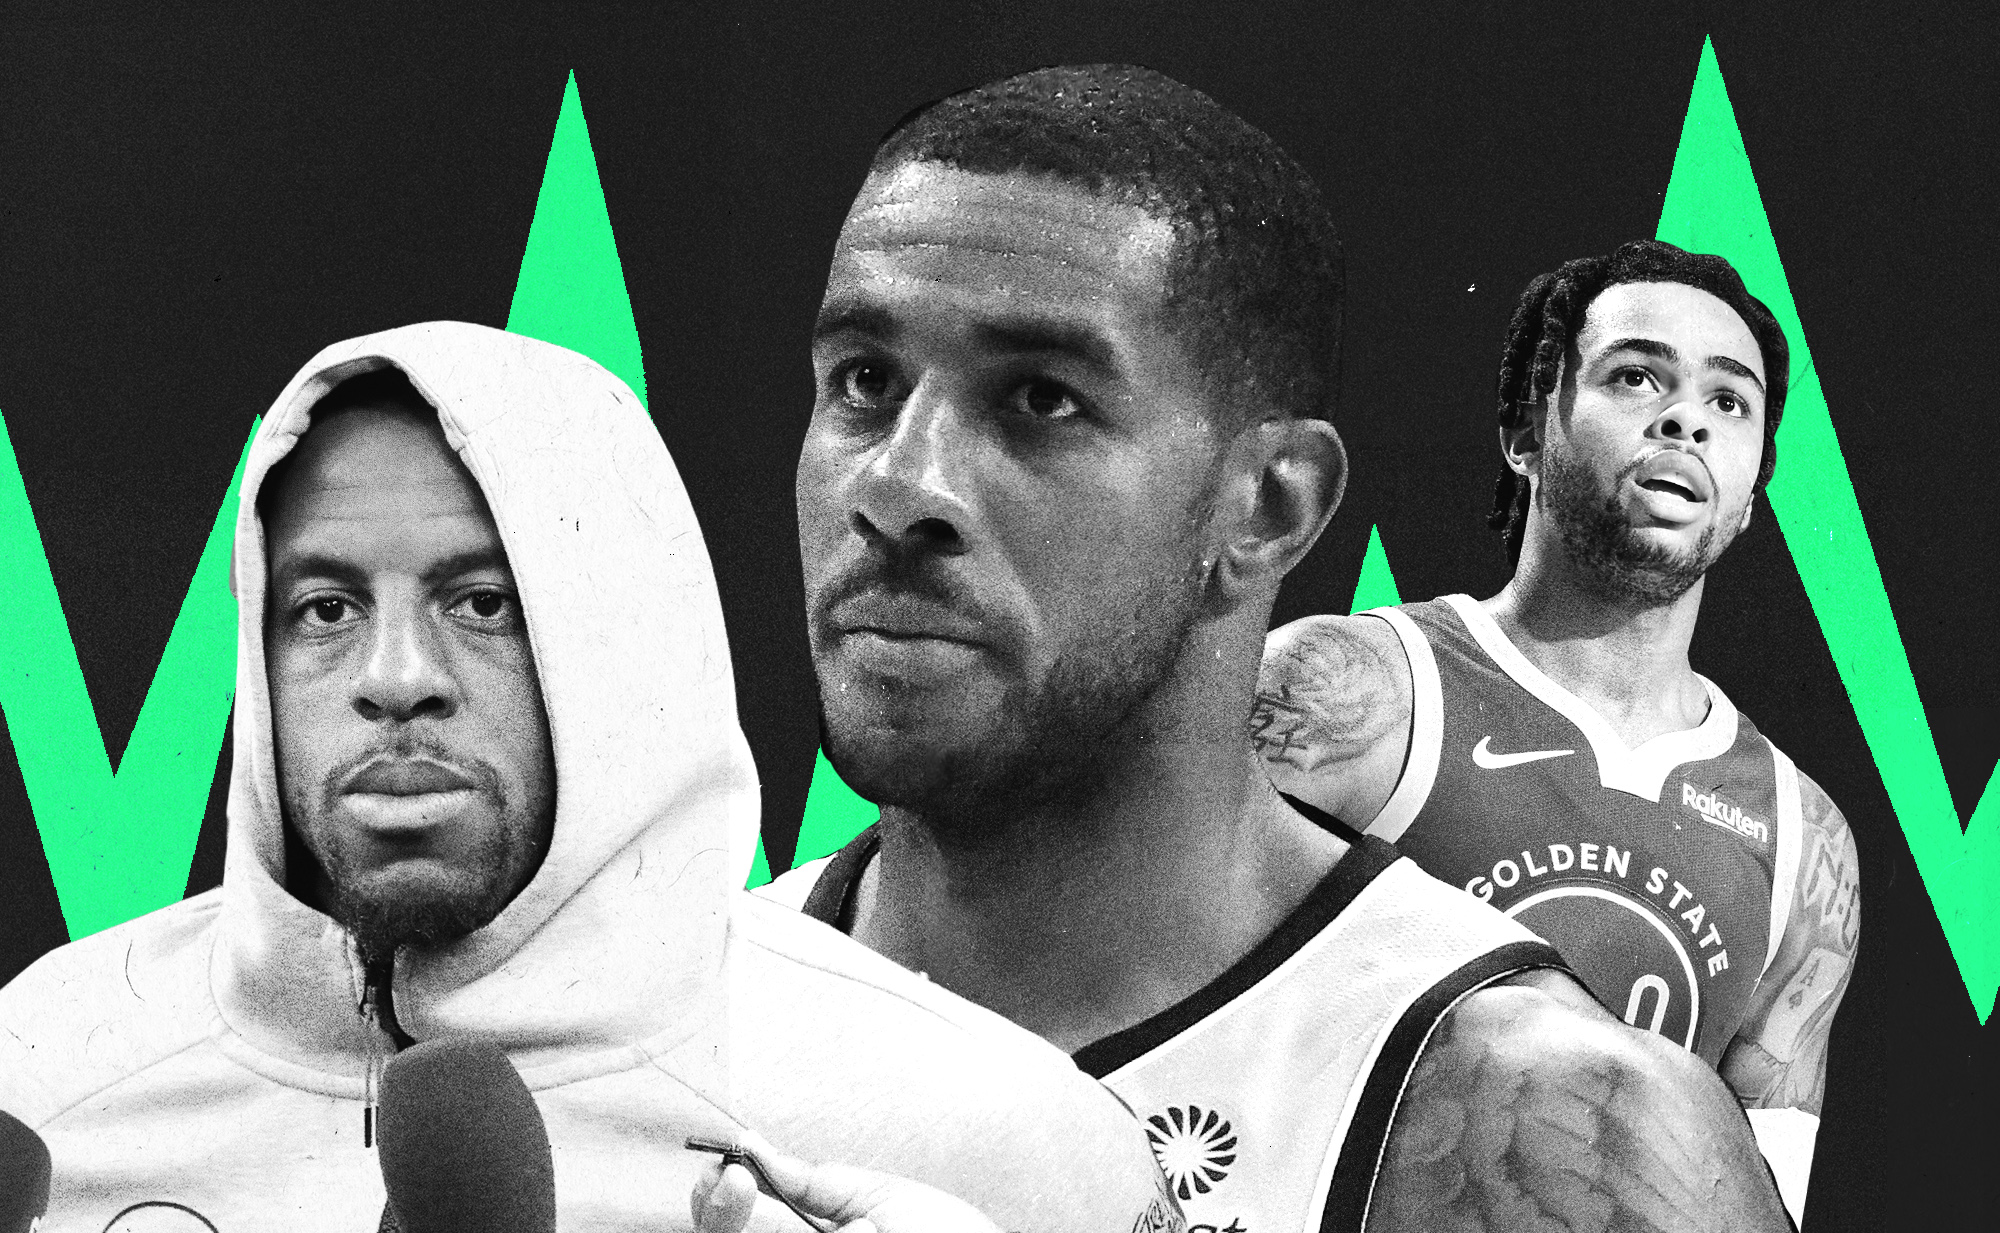 A collage of Andre Iguodala, LaMarcus Aldridge, and D'Angelo Russell.